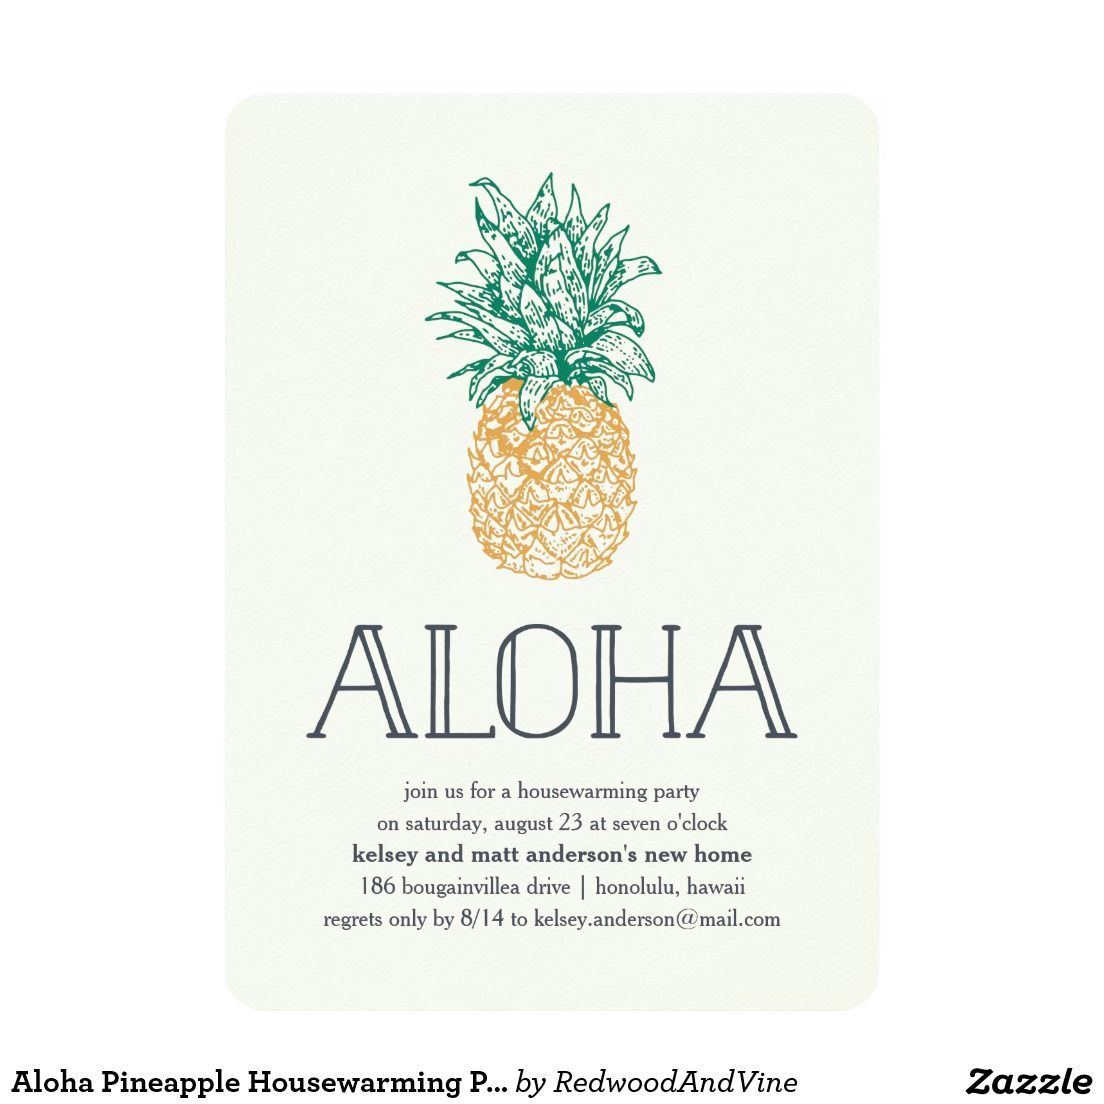 Aloha Pineapple Housewarming Party Invitation | Pineapple ...